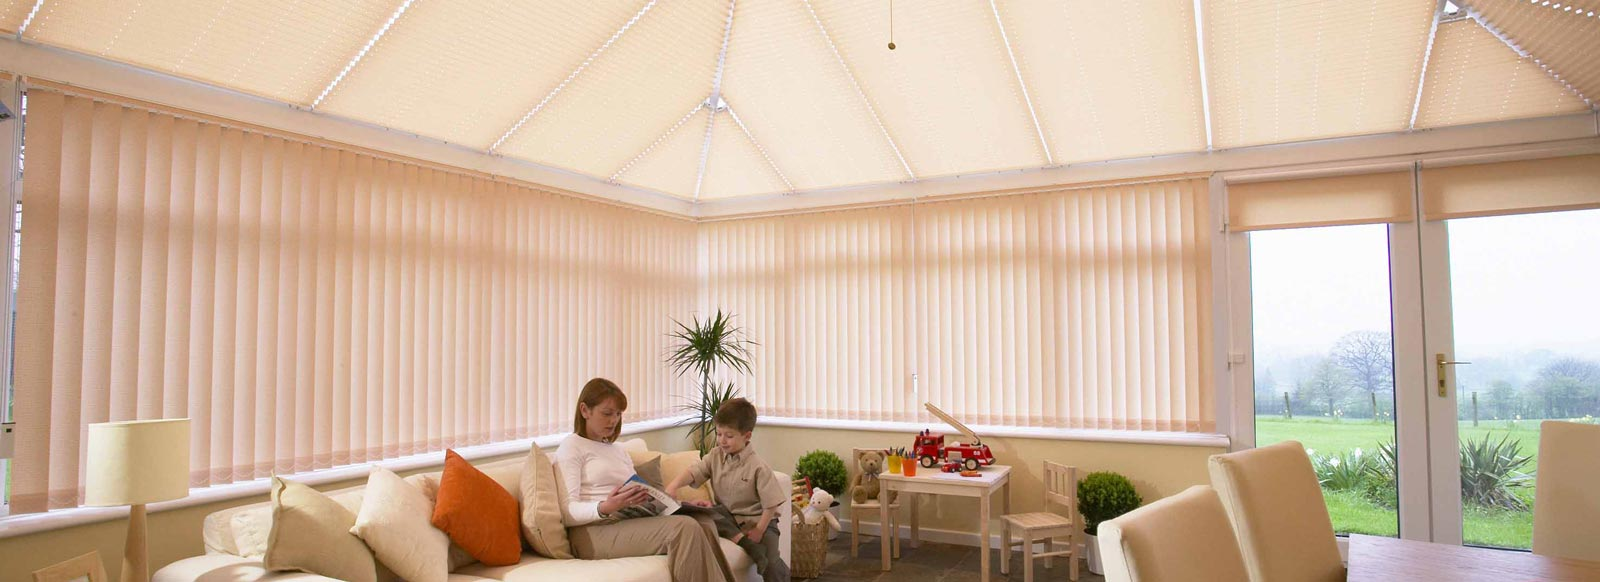 marla conservatory roof pleated blinds